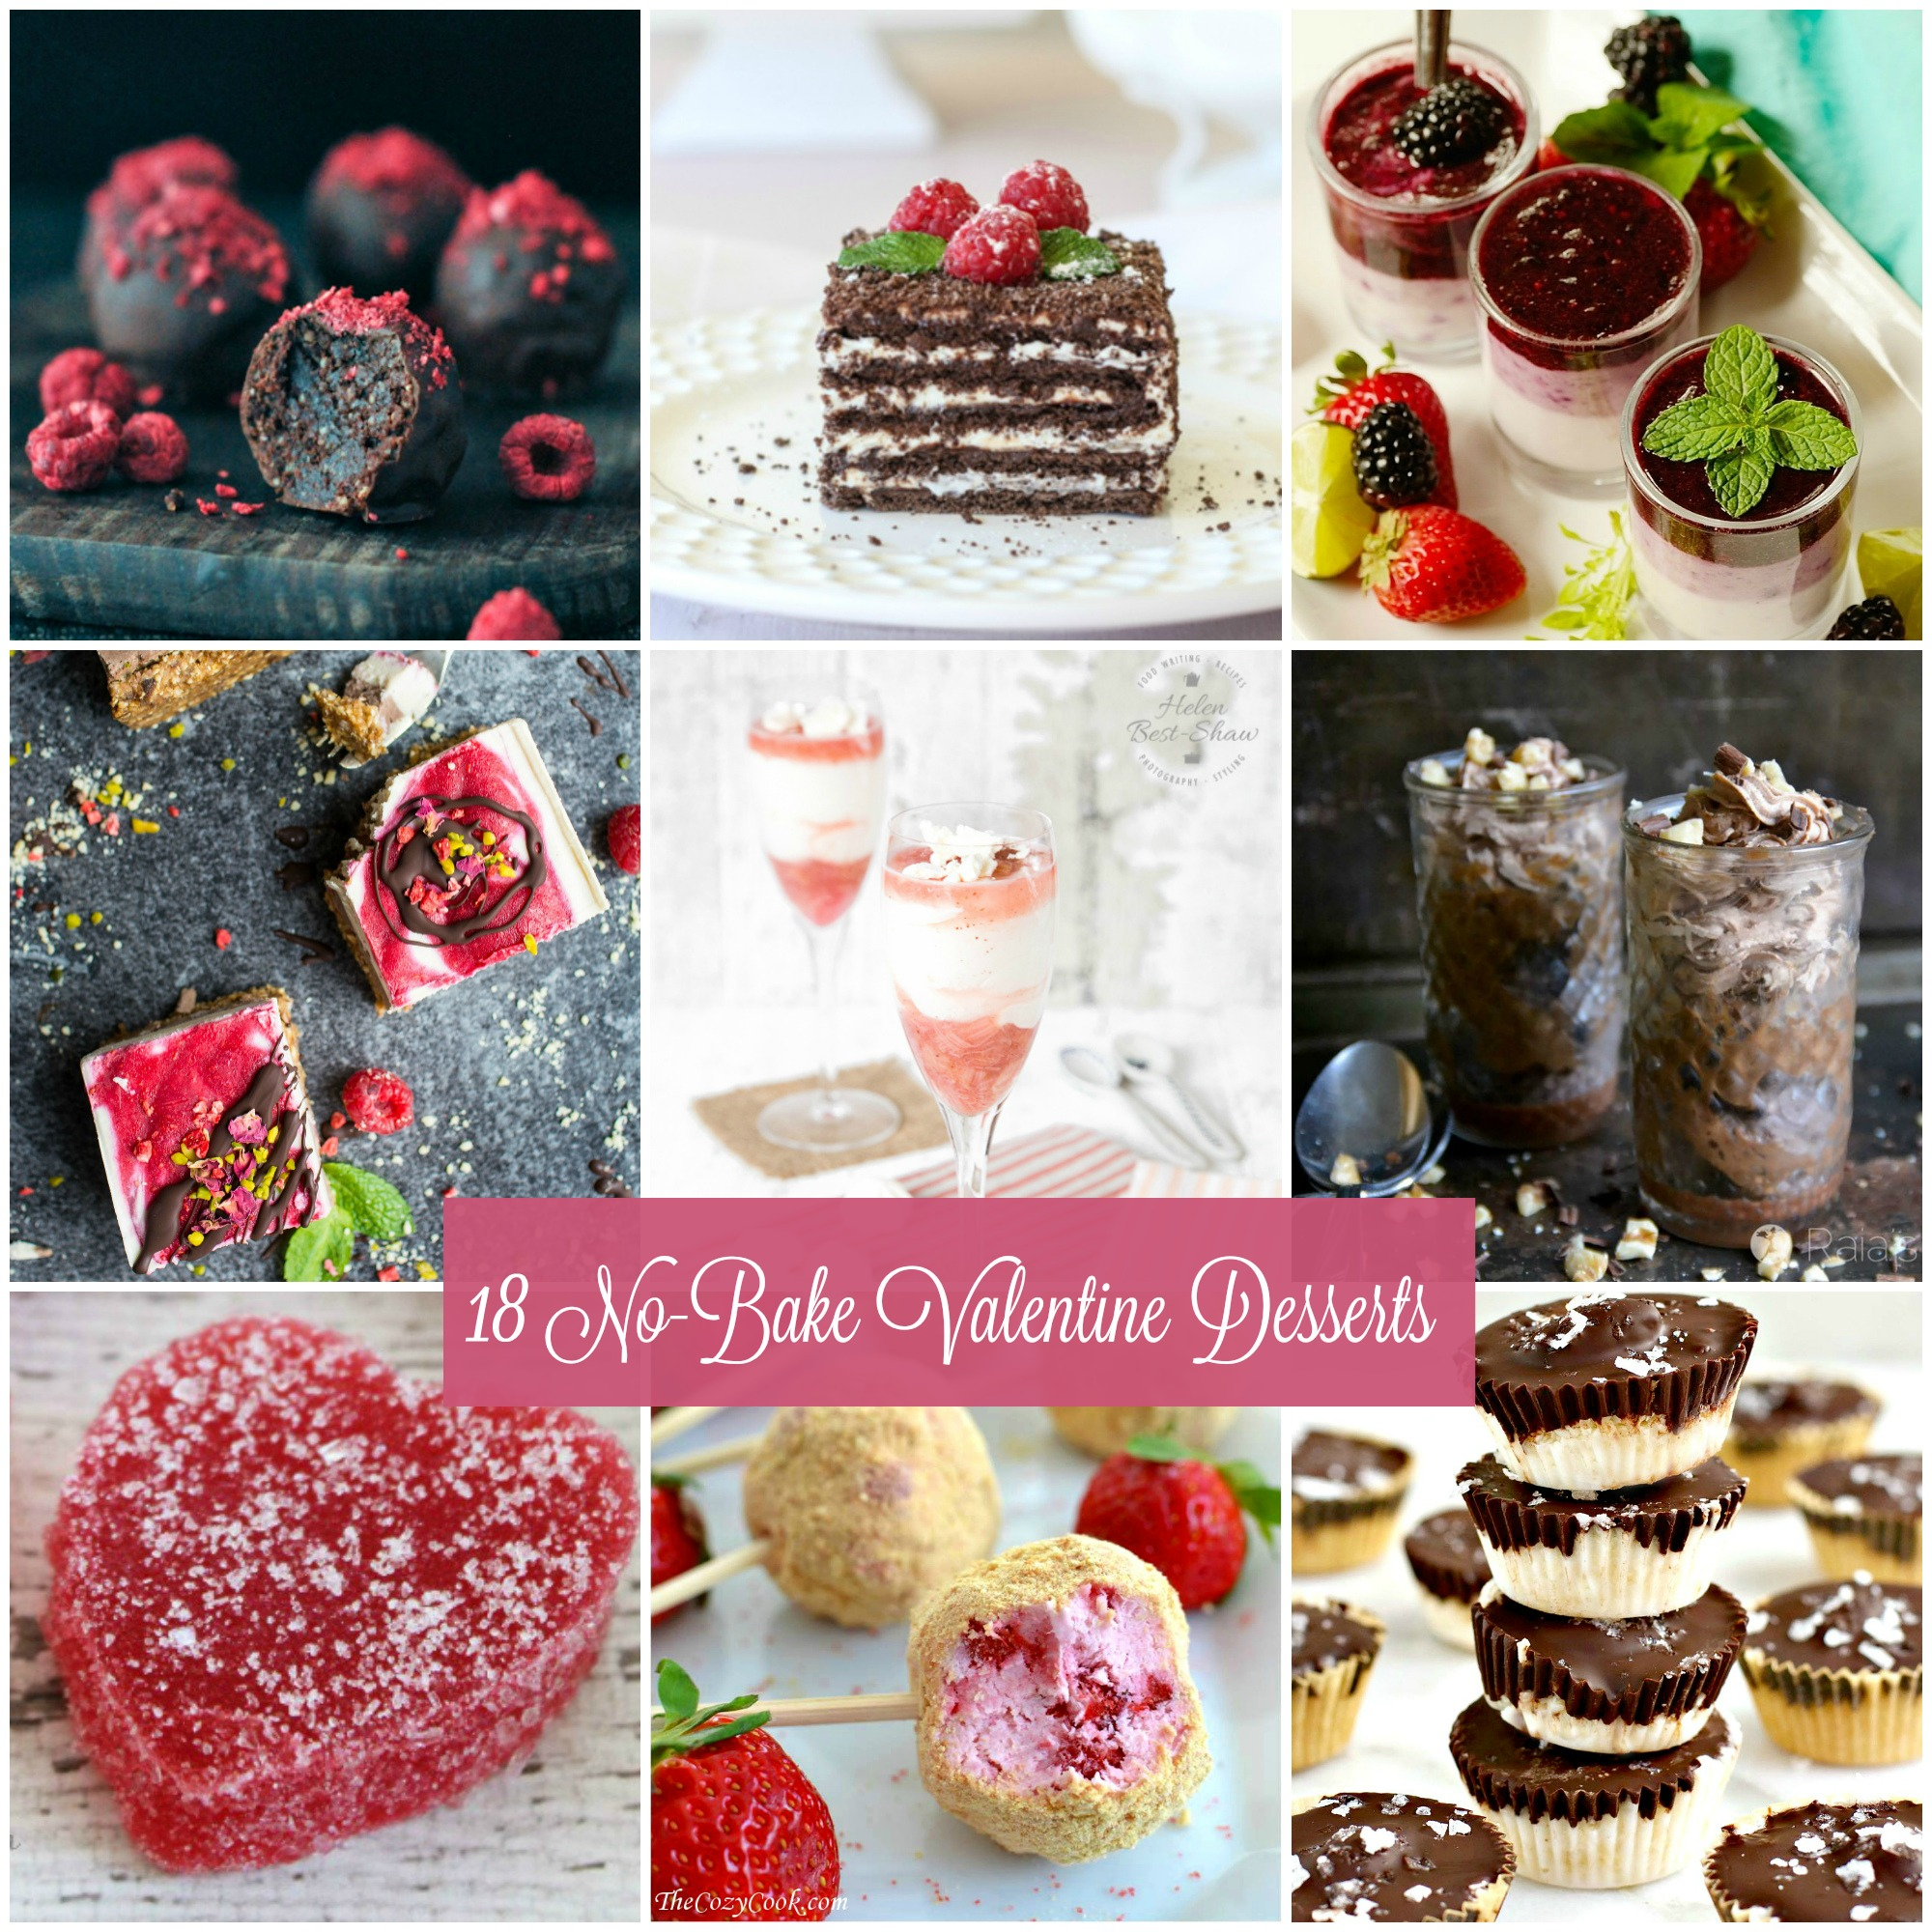 No need to turn on the oven and sweat over a difficult recipe this Valentine's Day. Show your special someone how very special they are with 18 No-Bake Valentine Desserts.  via @krazykitchenmom